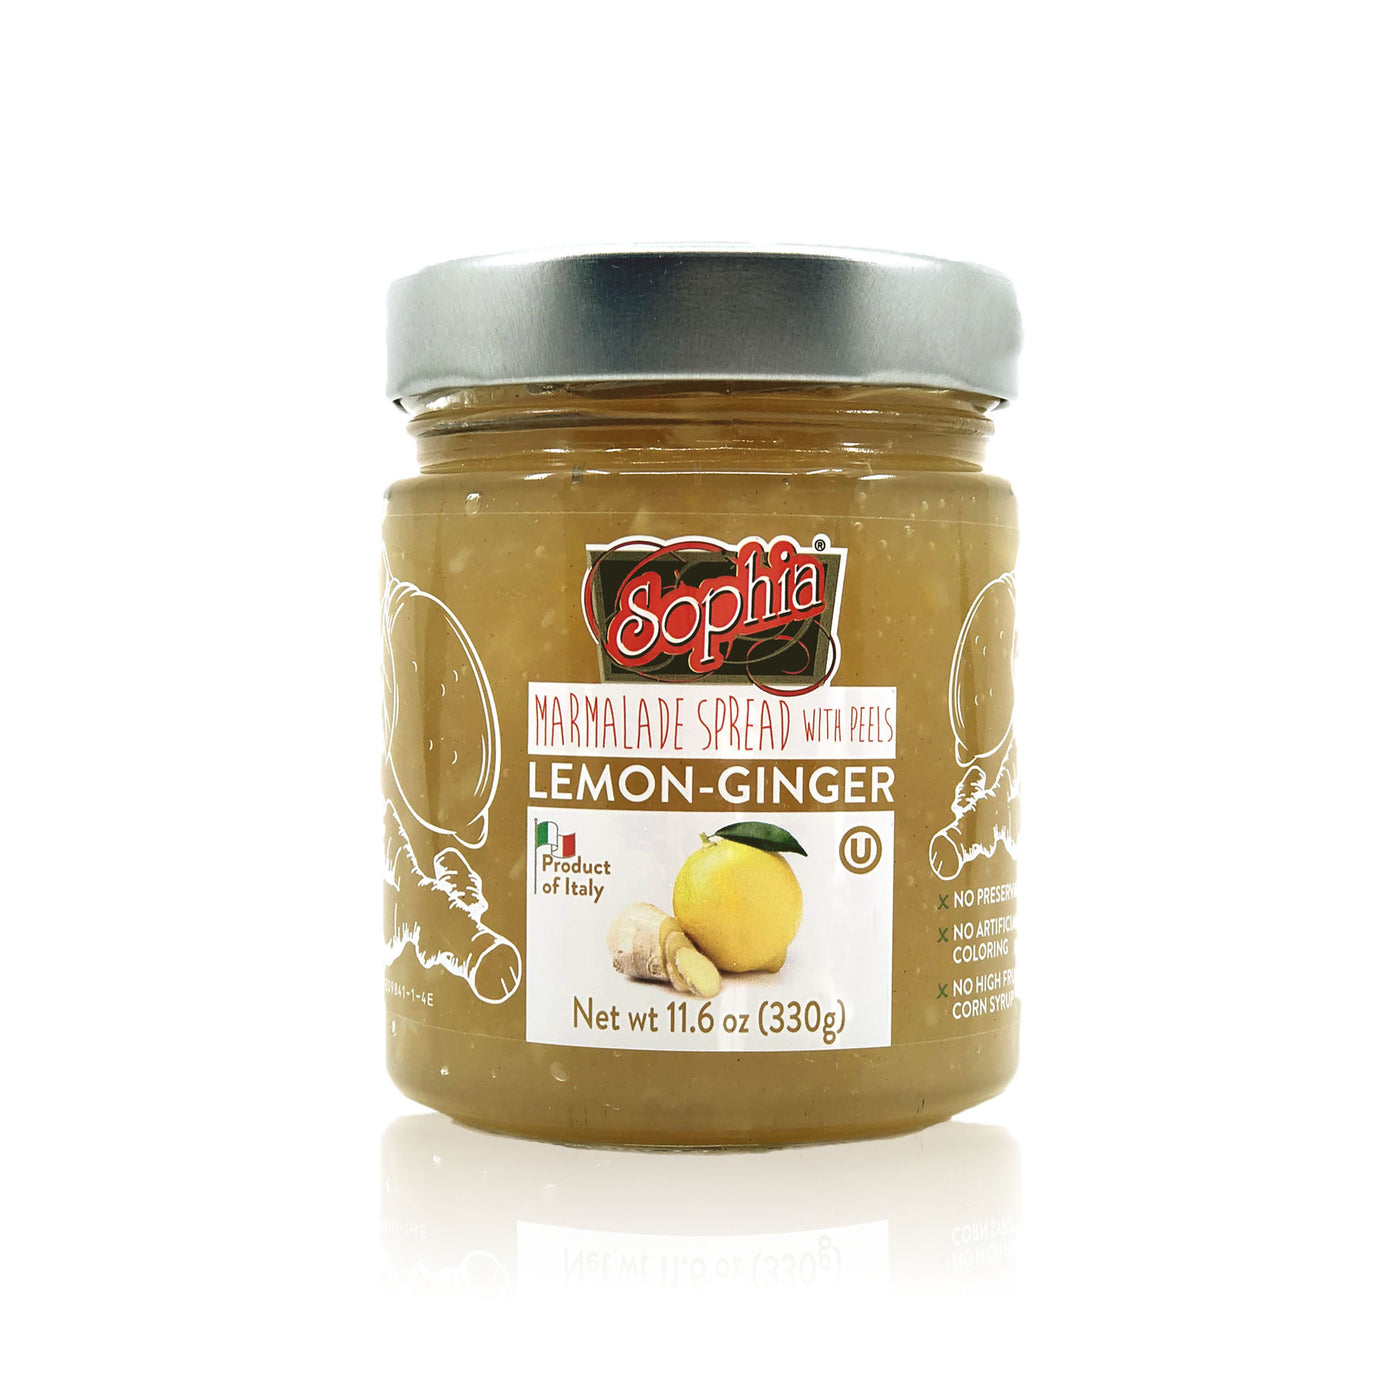 Sophia Fruit Spread - Lemon Ginger Preserves